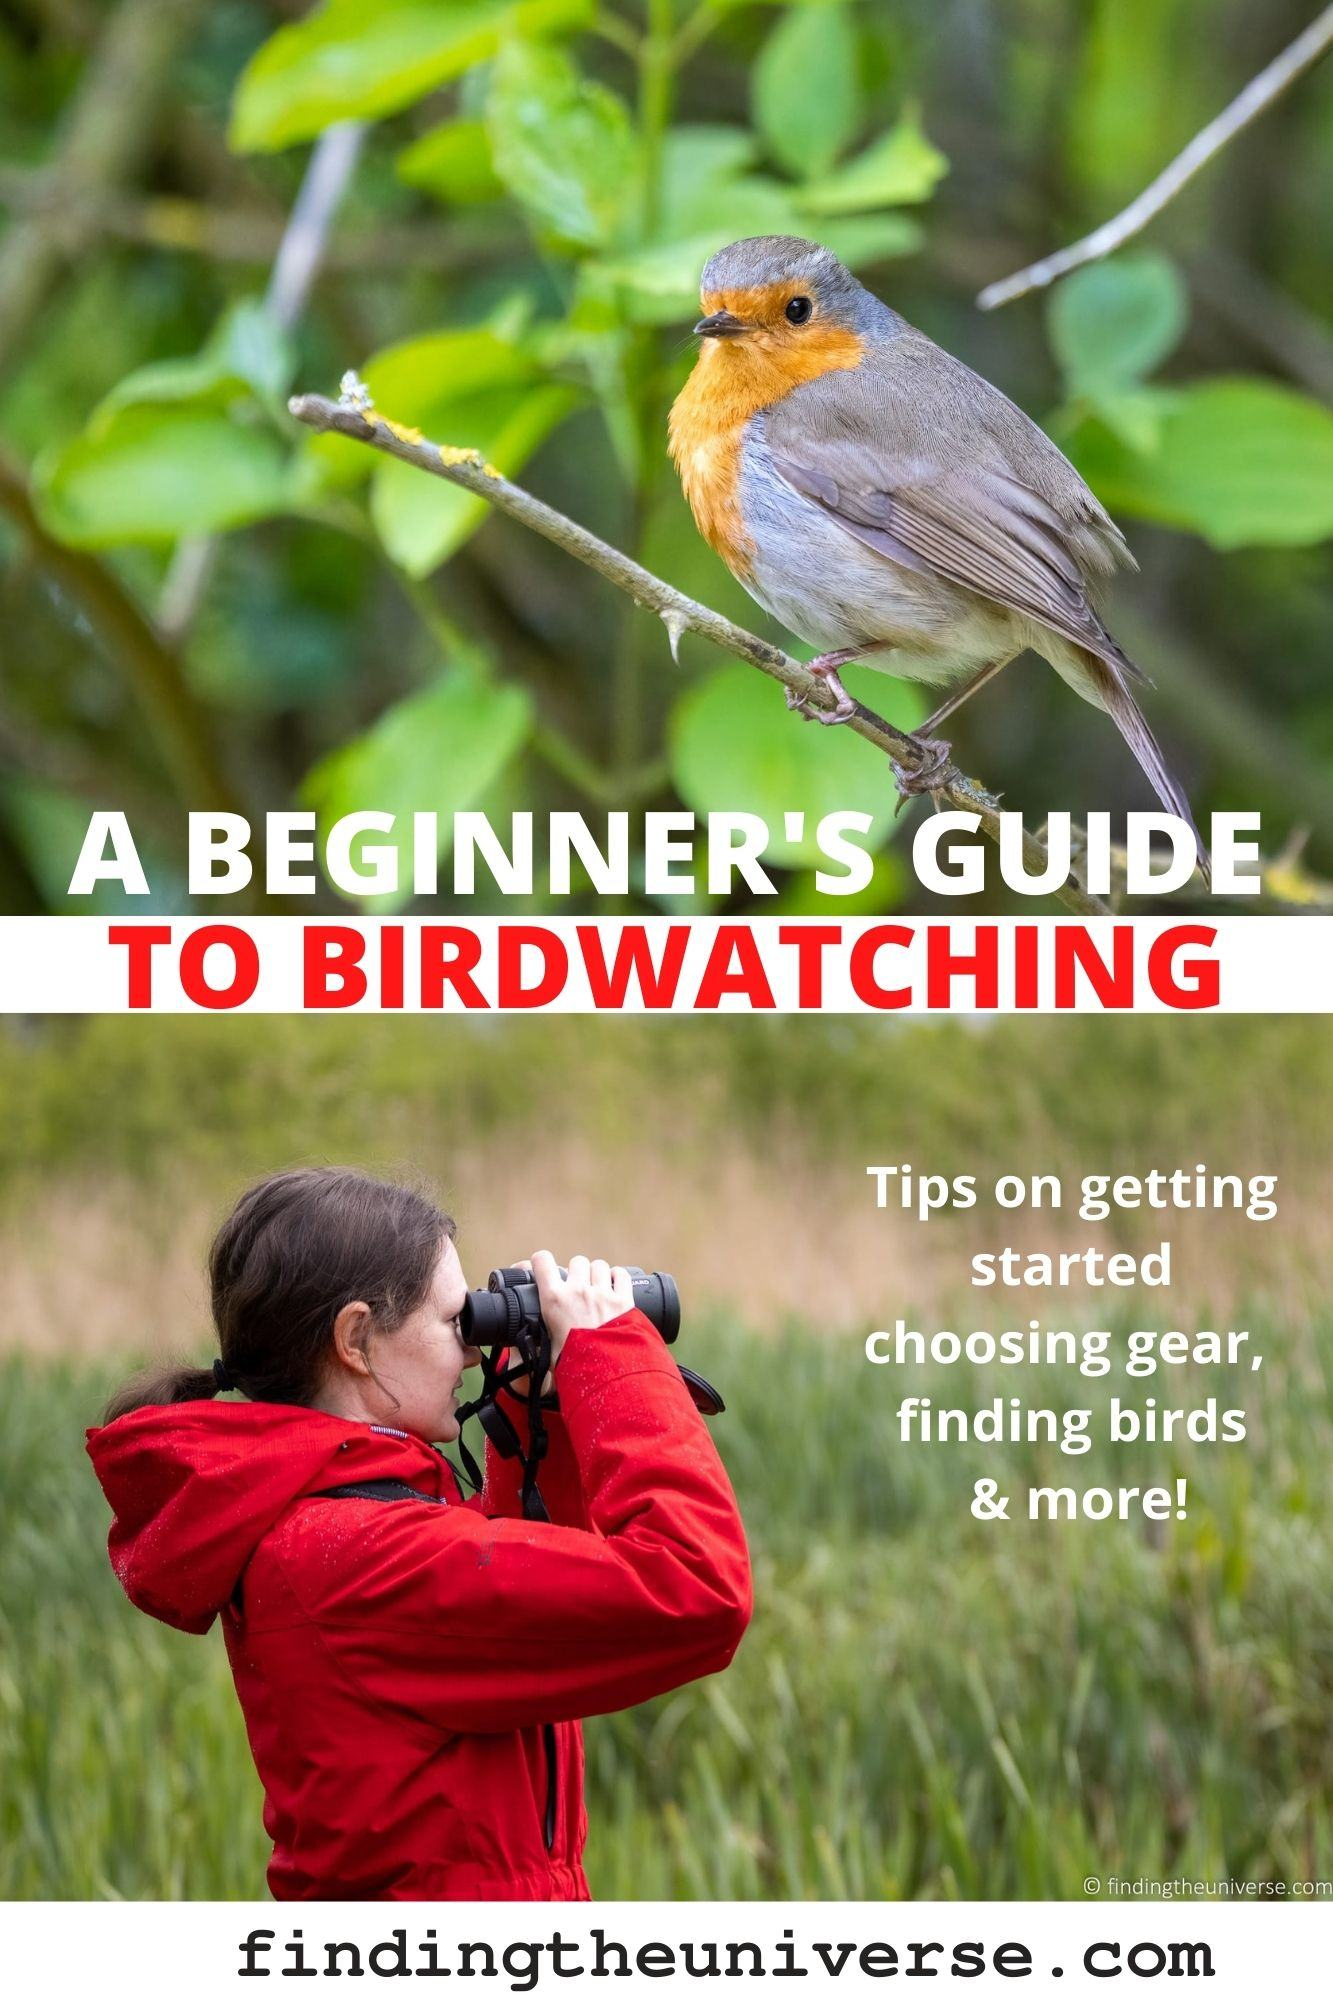 A detailed beginner's guide to birdwatching. Everything you need to know, from gear, to tips for photographing birds to finding them!